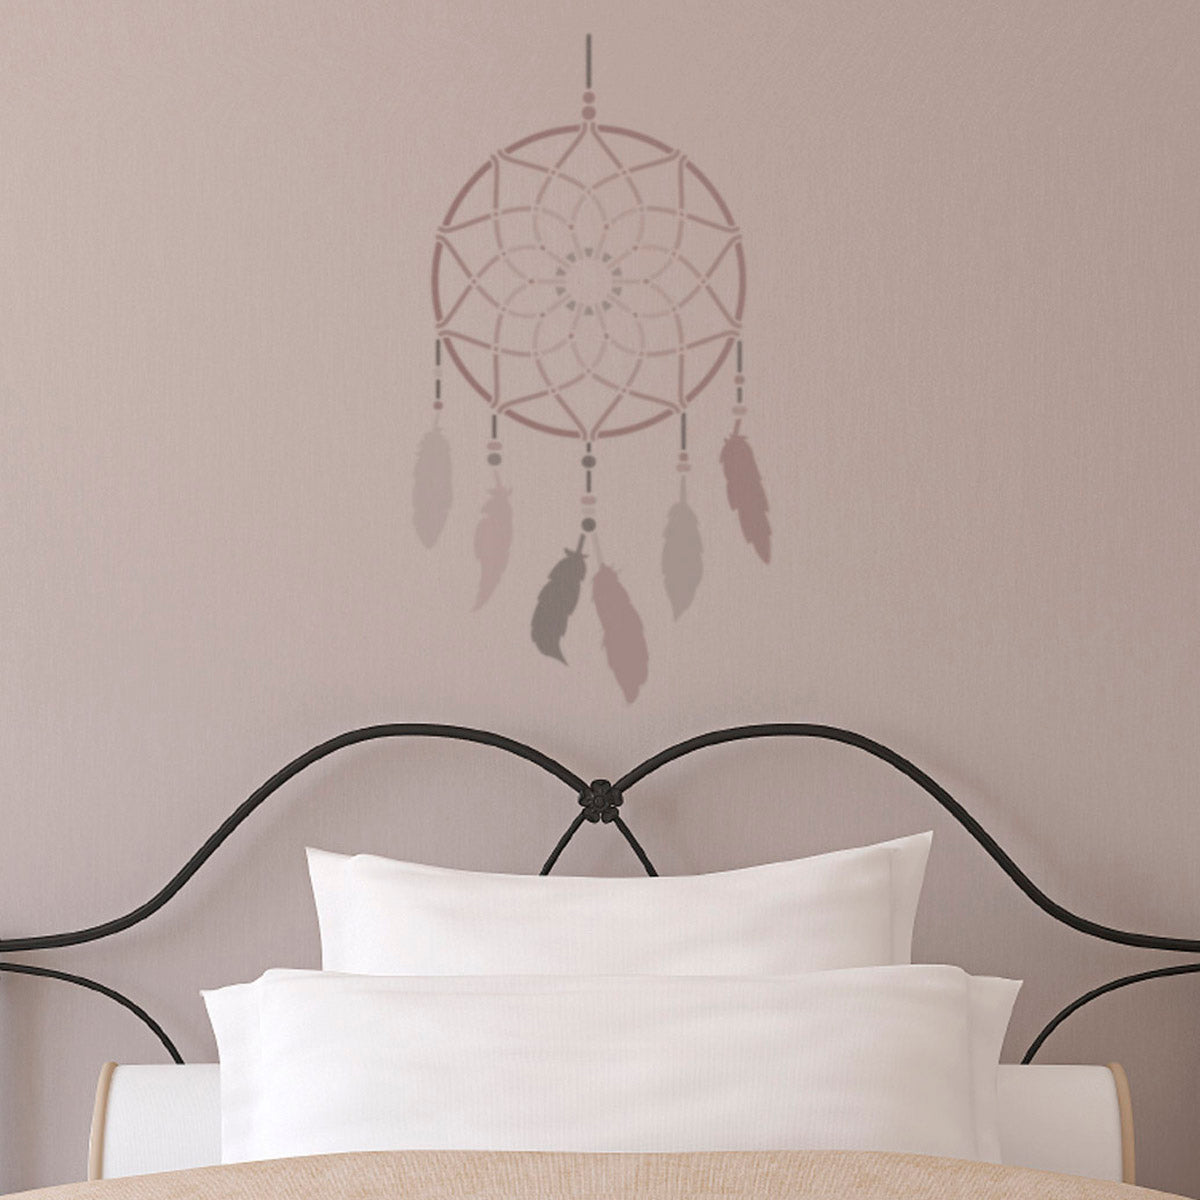 CraftStar Dreamcatcher Wall Stencil